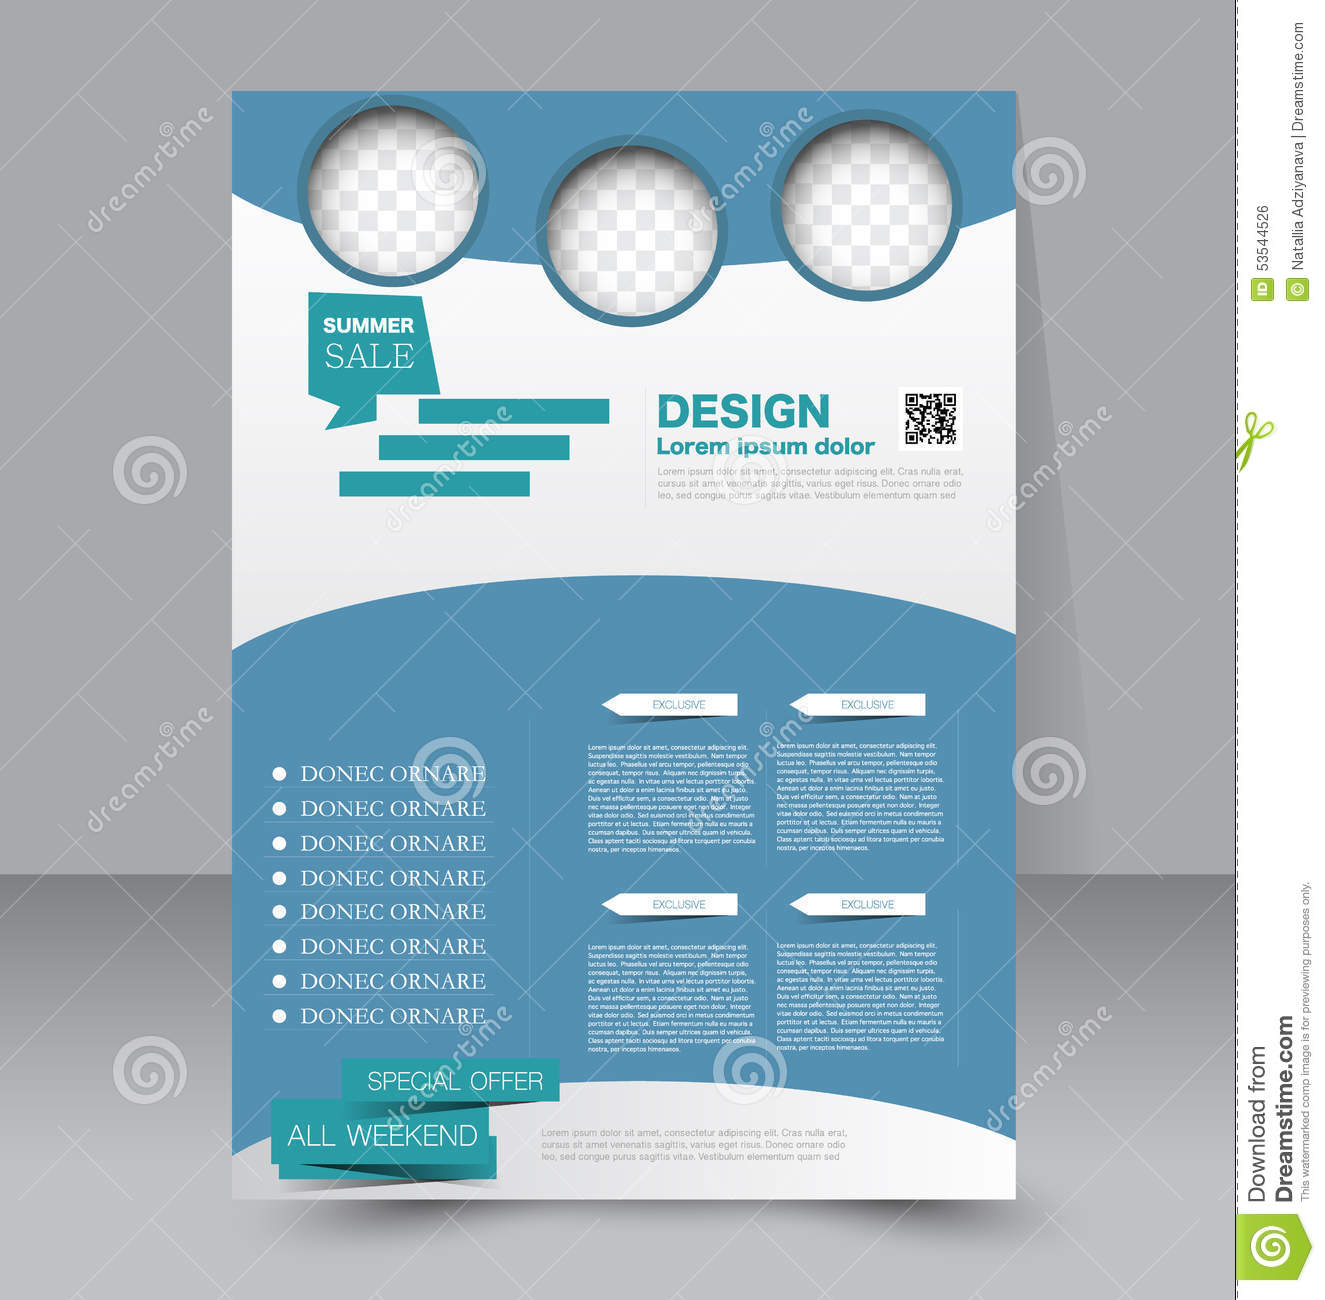 Flyer Template Business Brochure Editable A Poster Stock Vector - Editable brochure templates